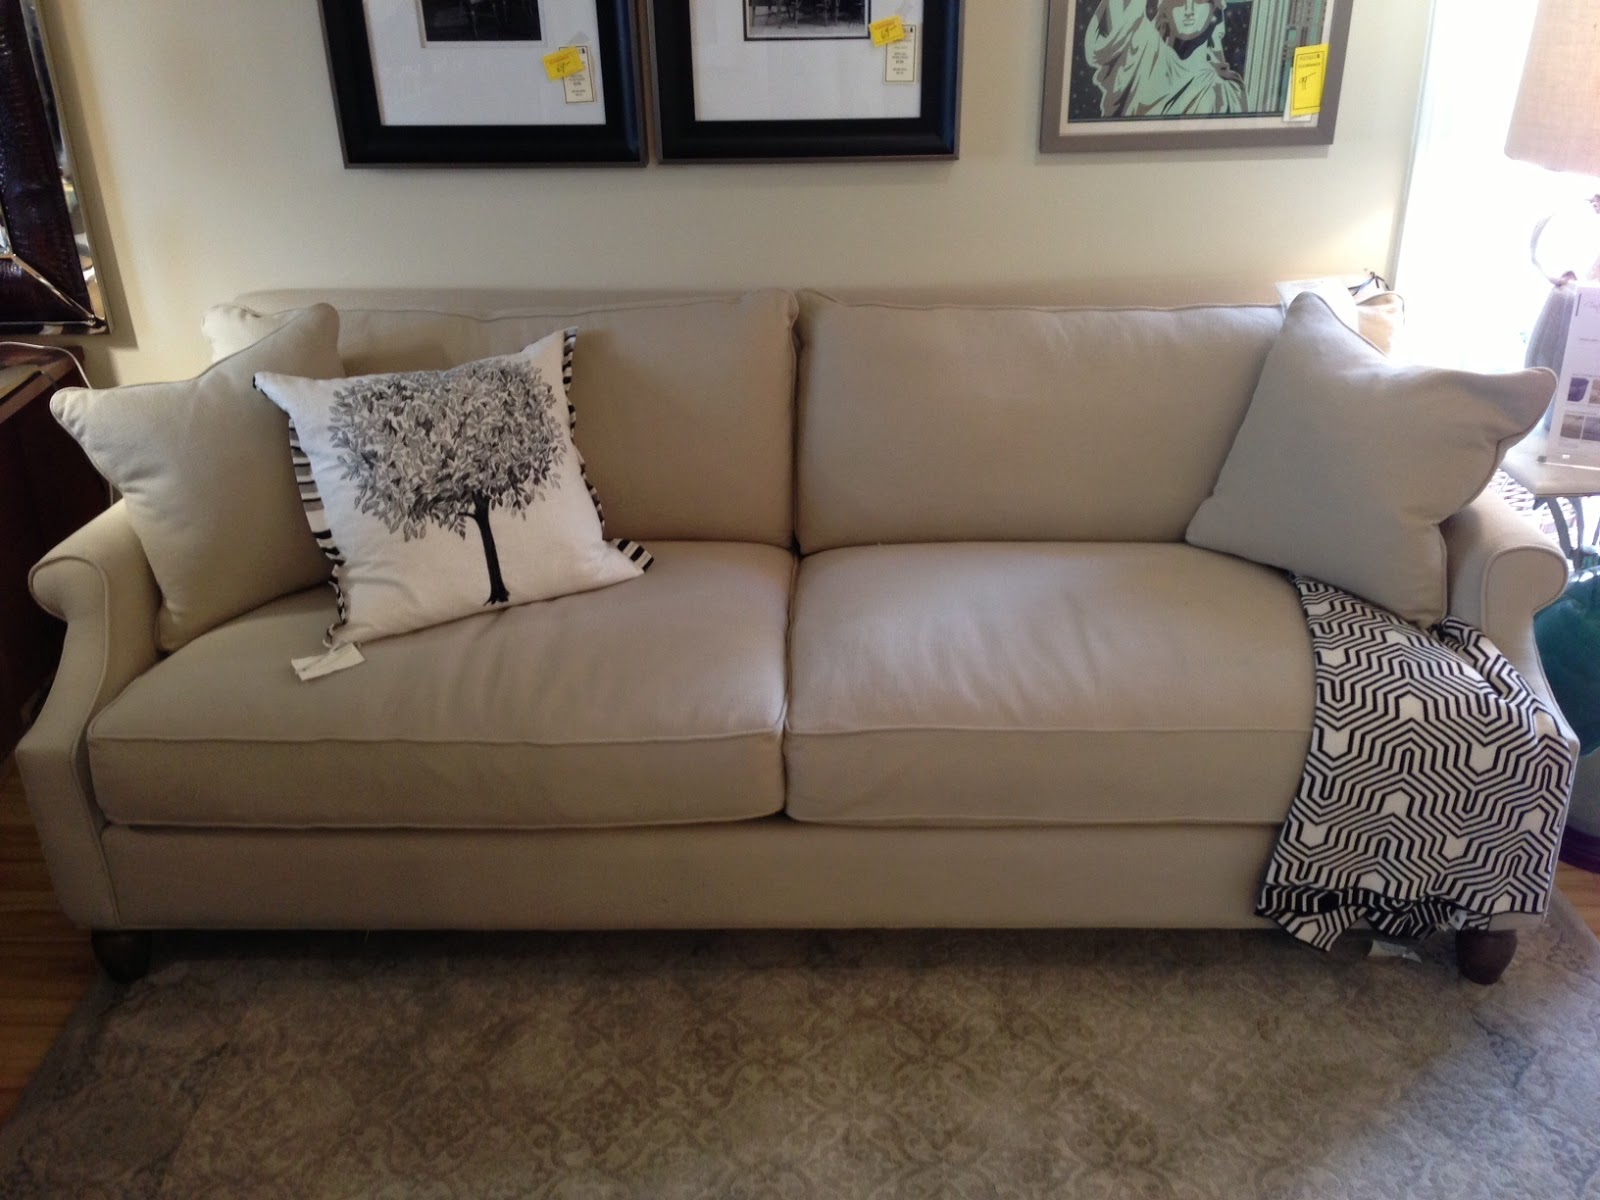 Wesley Hall Sofa NOW $1795 From $4440